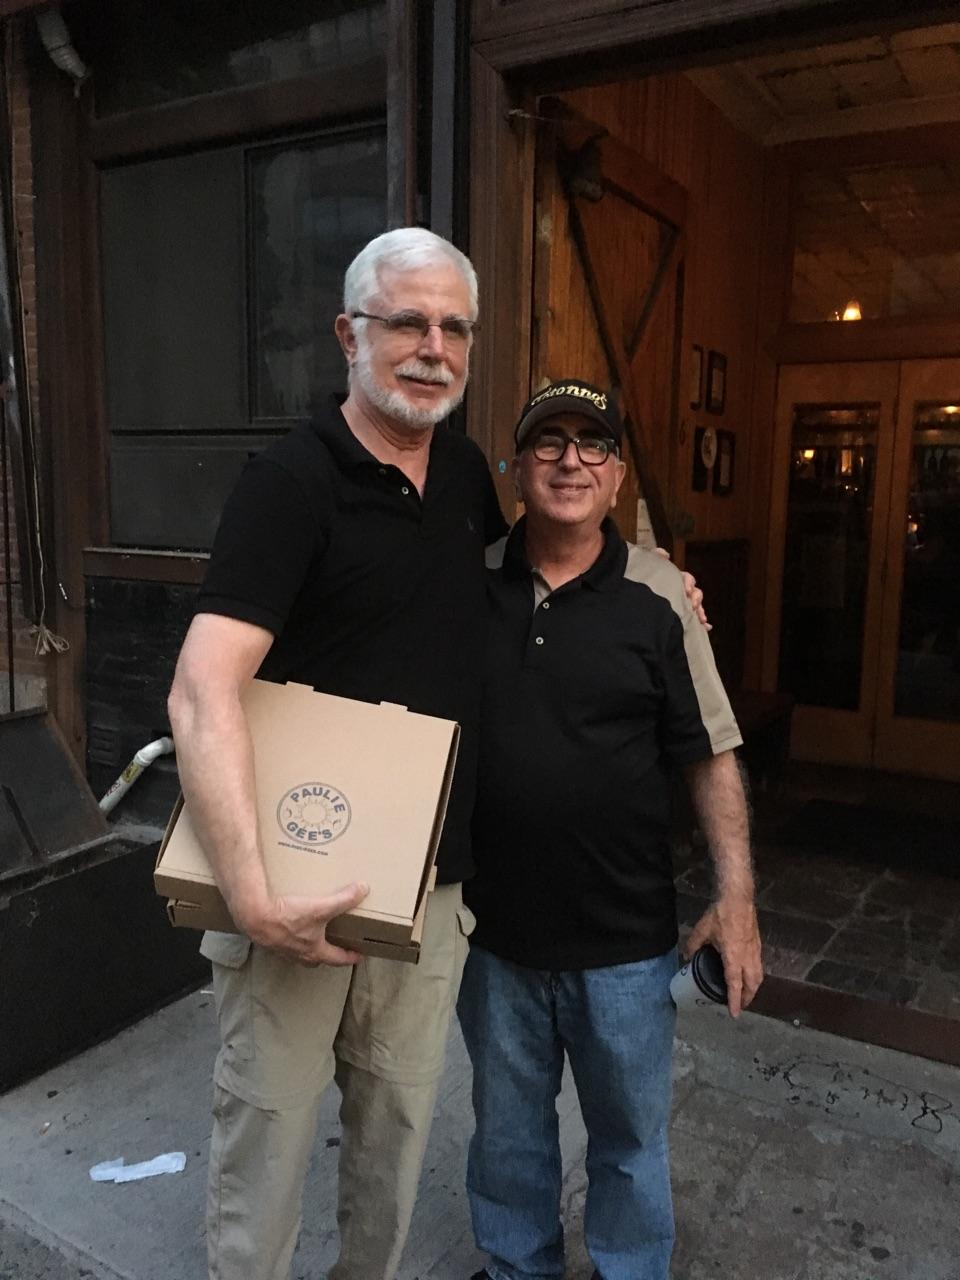 Charlie with Paulie Gee.  Of note: The pizza boxes were for leftovers,  not  take out (this will make sense when you listen to episode #035).